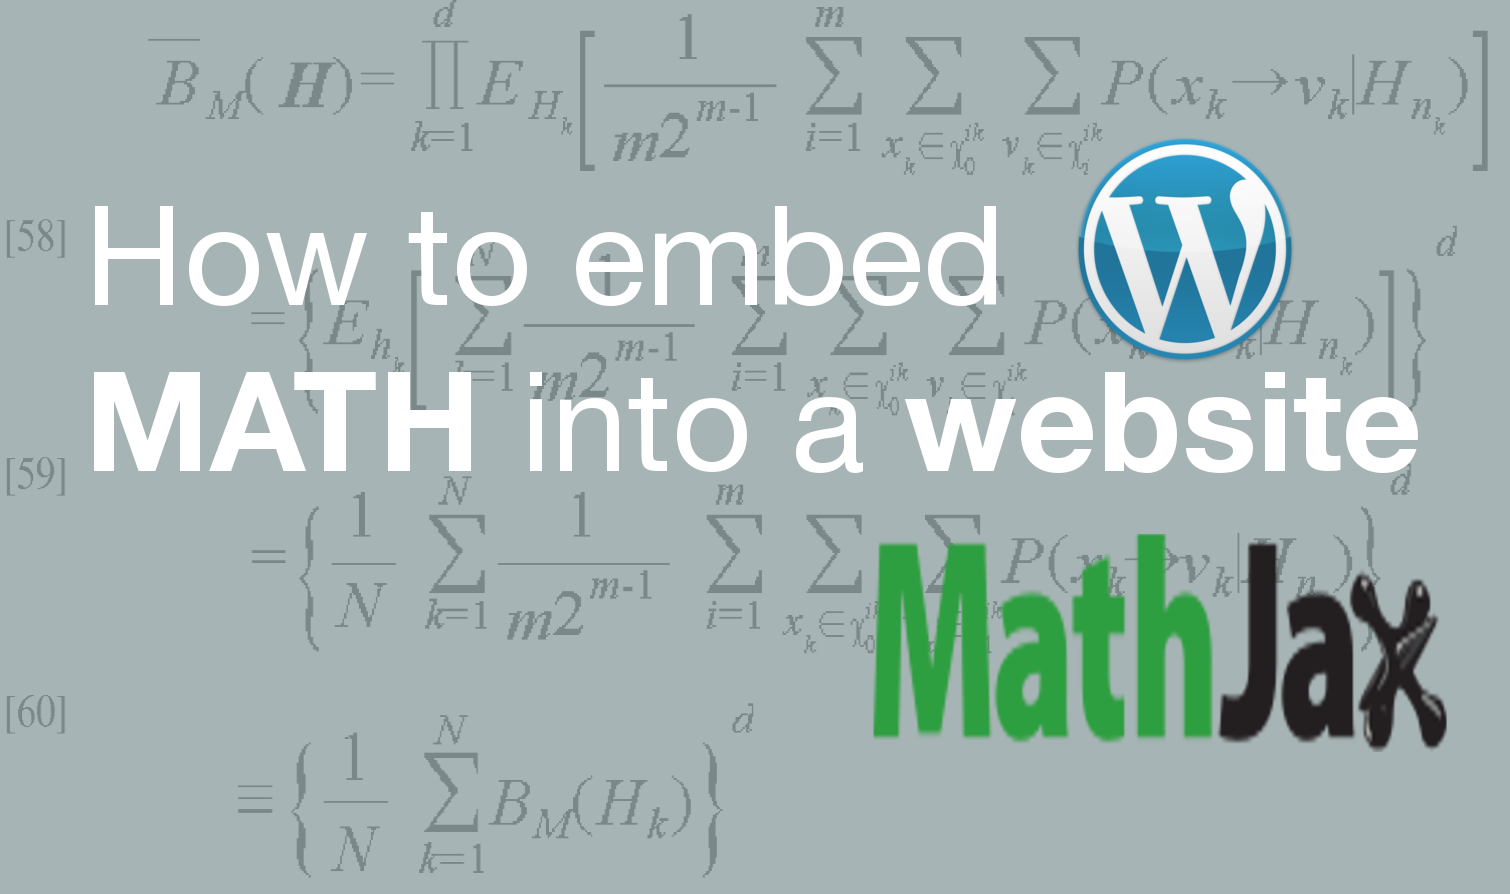 How to embed math into a website